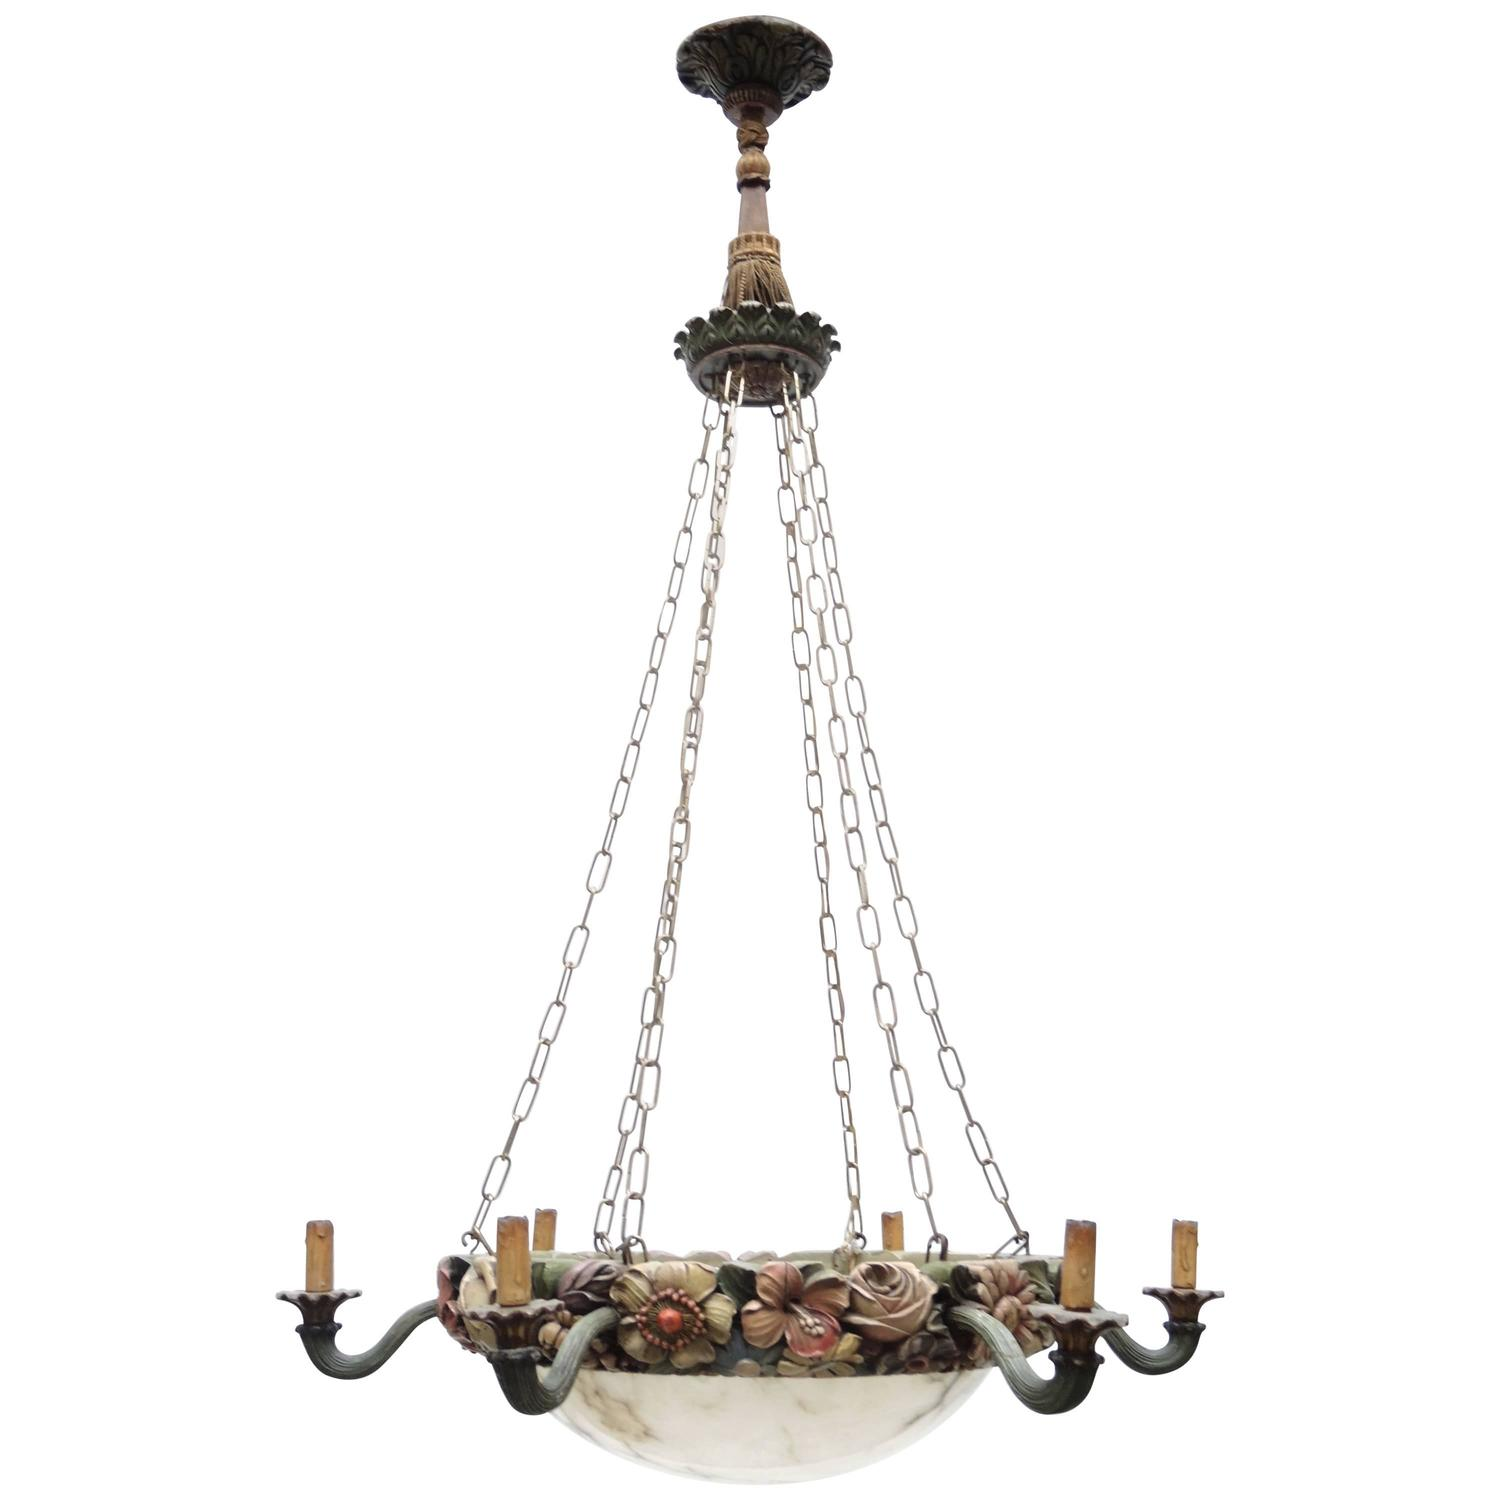 Belgian Chandeliers and Pendants 119 For Sale at 1stdibs